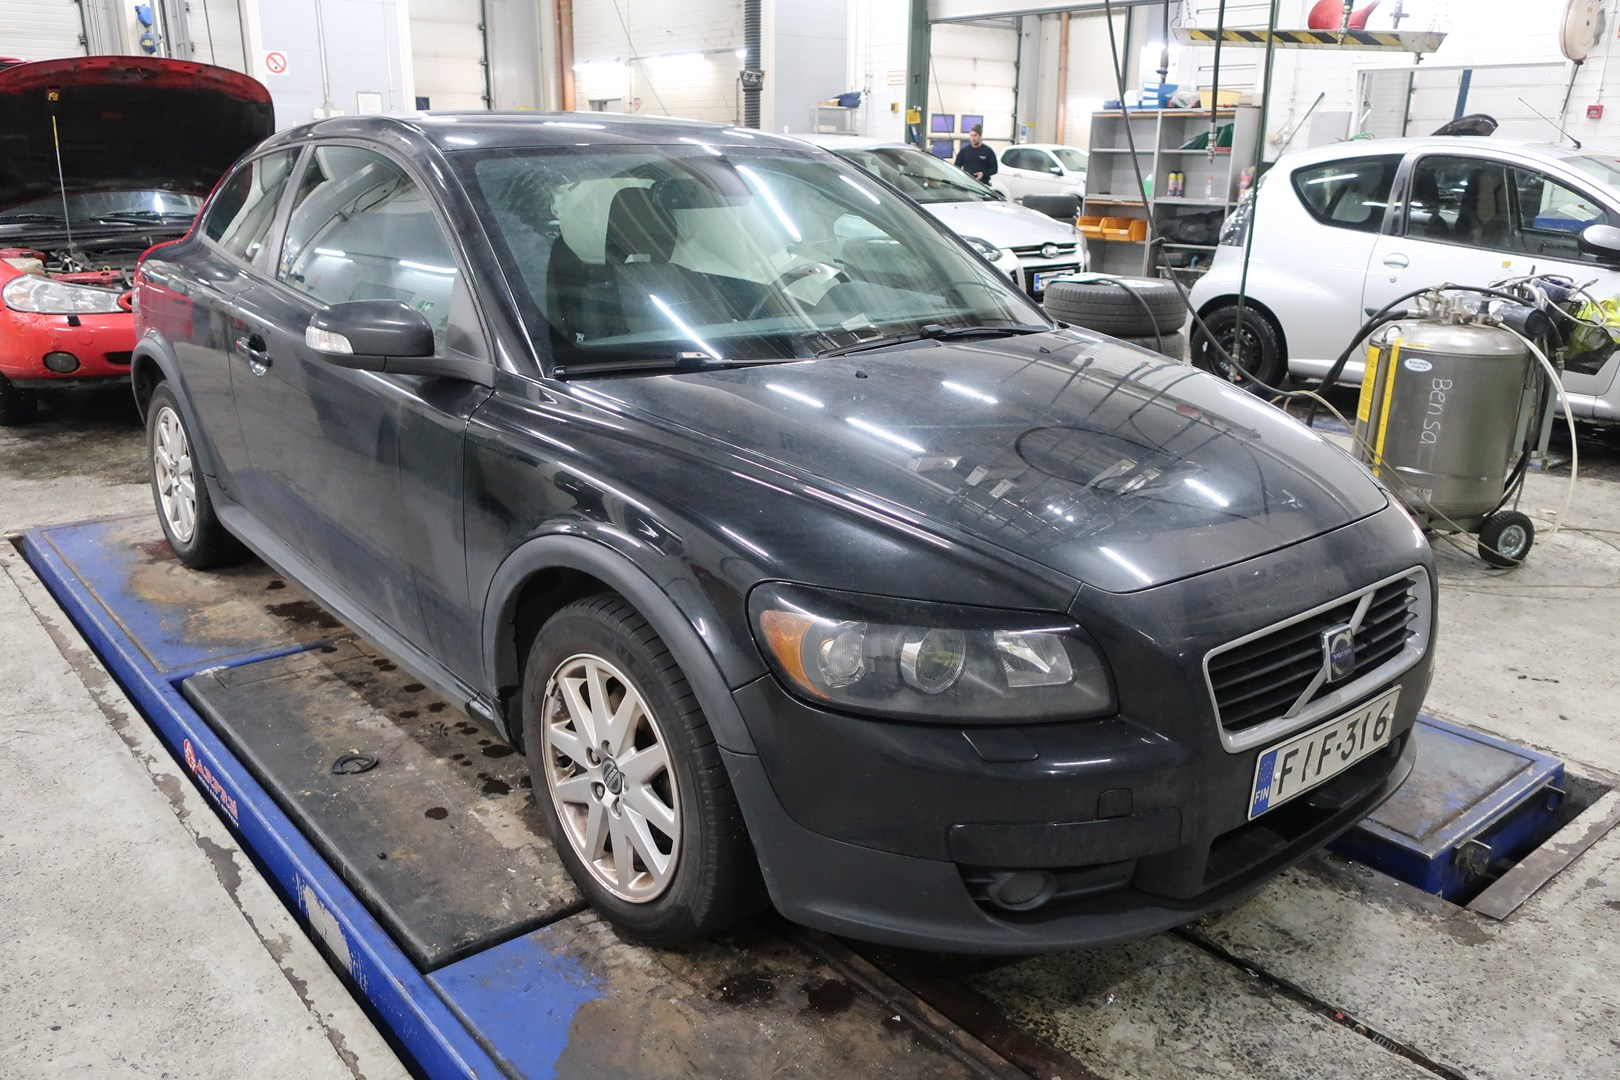 Volvo C30 For Sale >> 2007 Volvo C30 For Sale At Espoo On Tuesday November 26